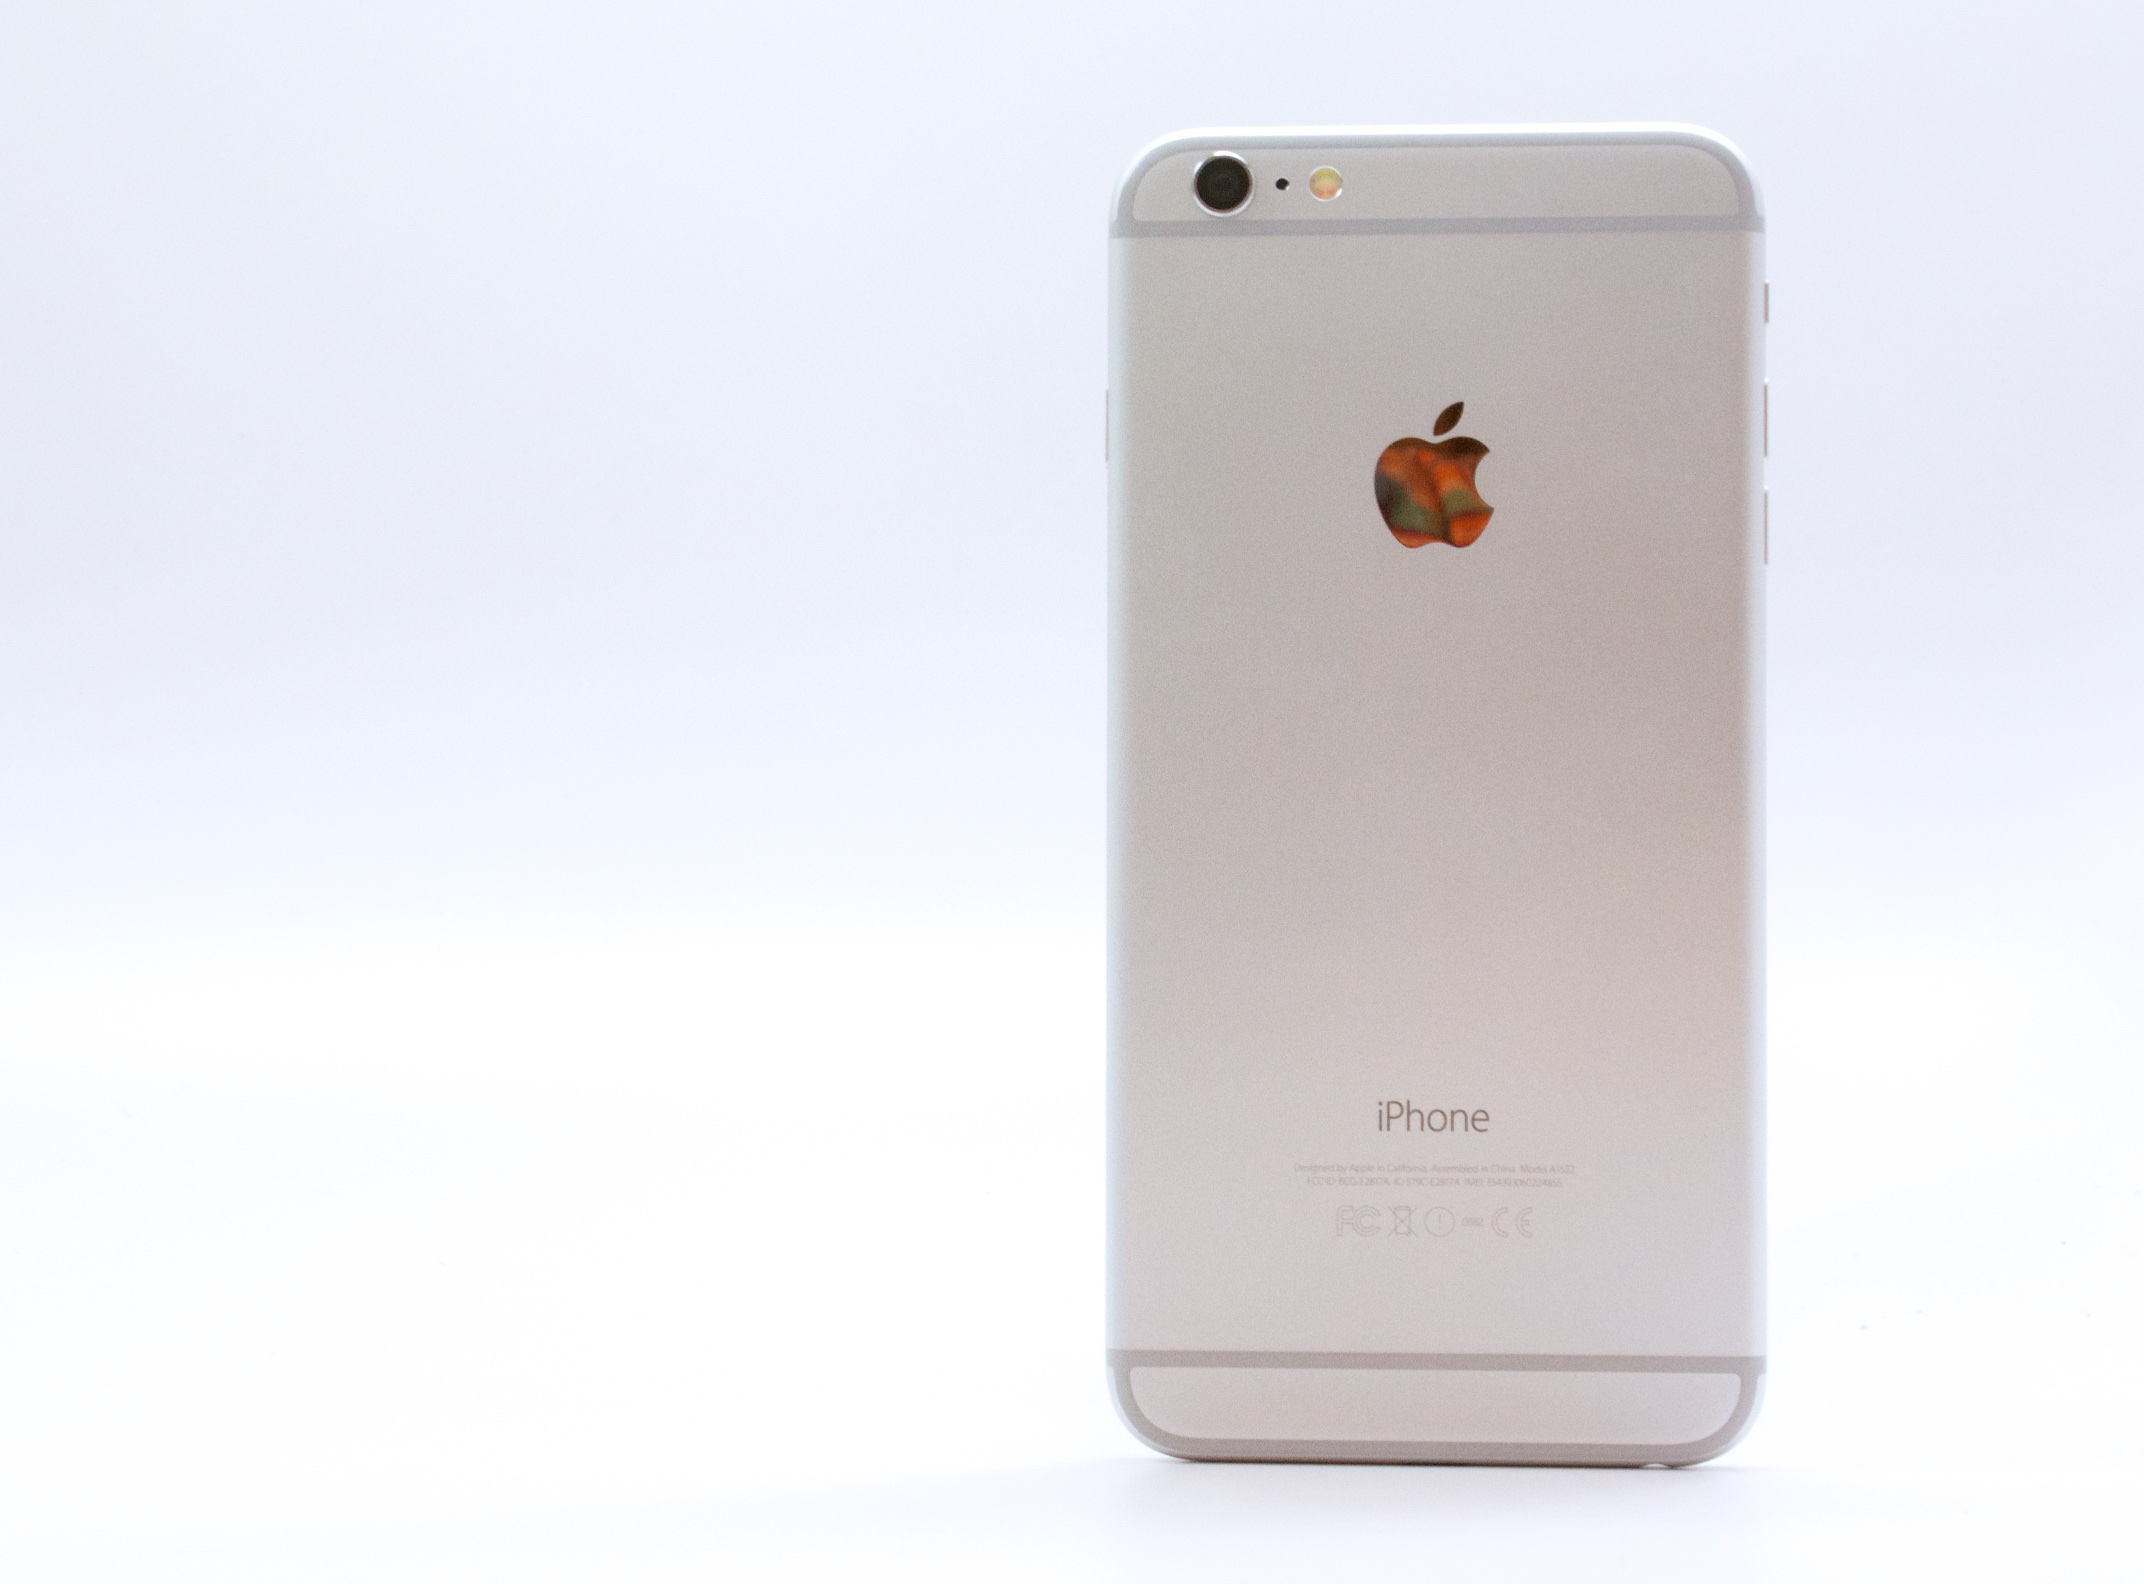 iPhone 6s Plus Release: 10 Things to Know Before Launch